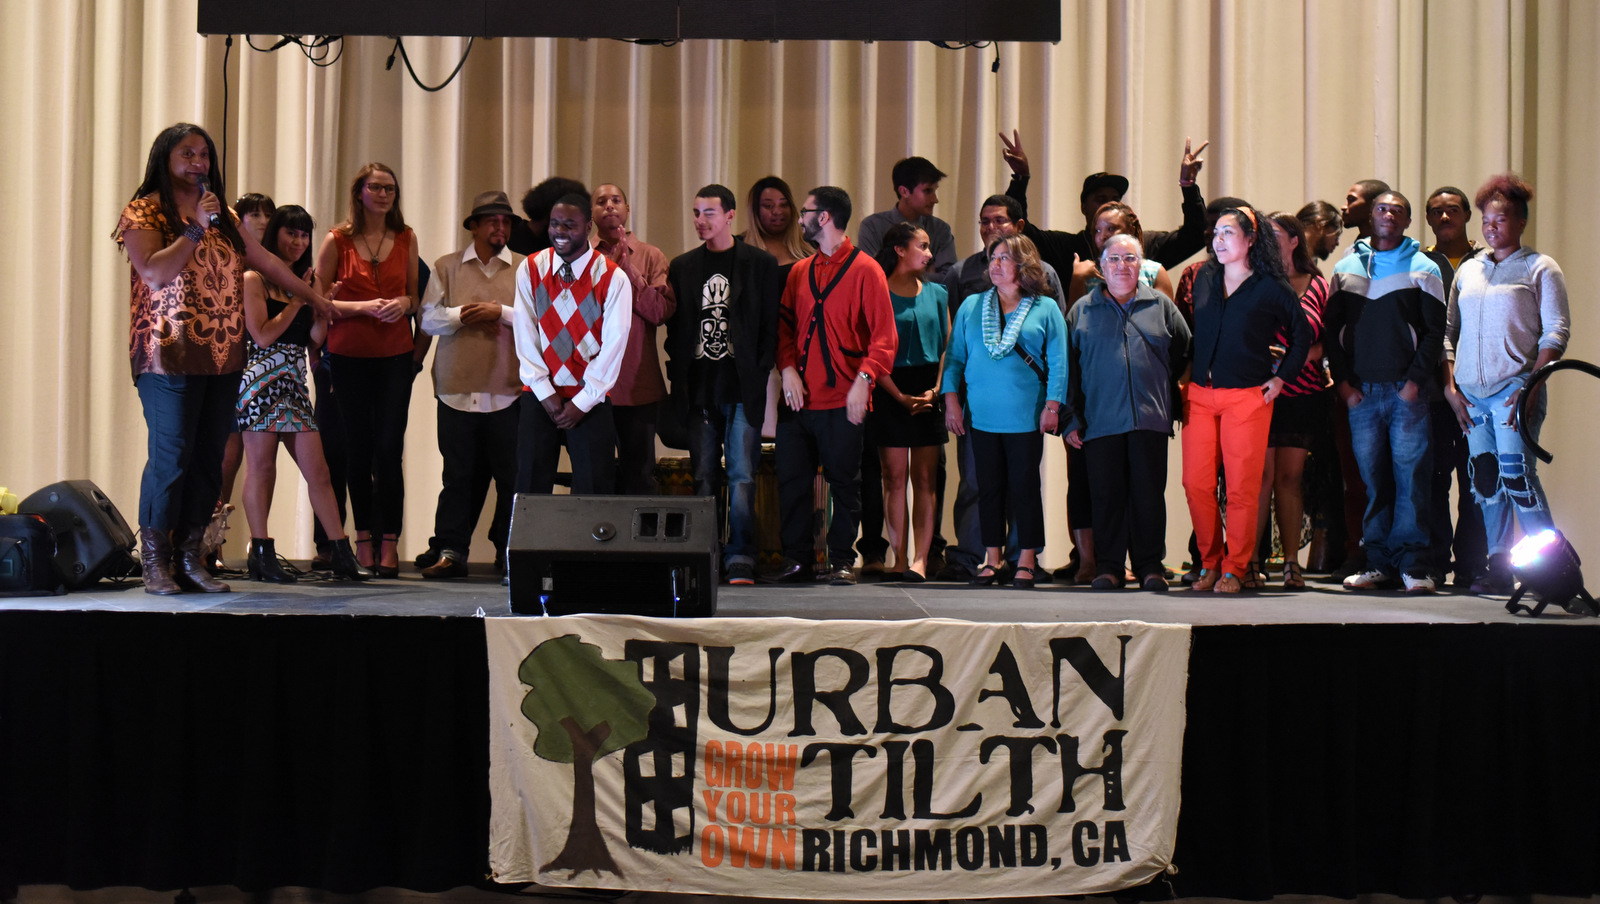 Urban Tilth Celebrates 10 Years of Food Justice